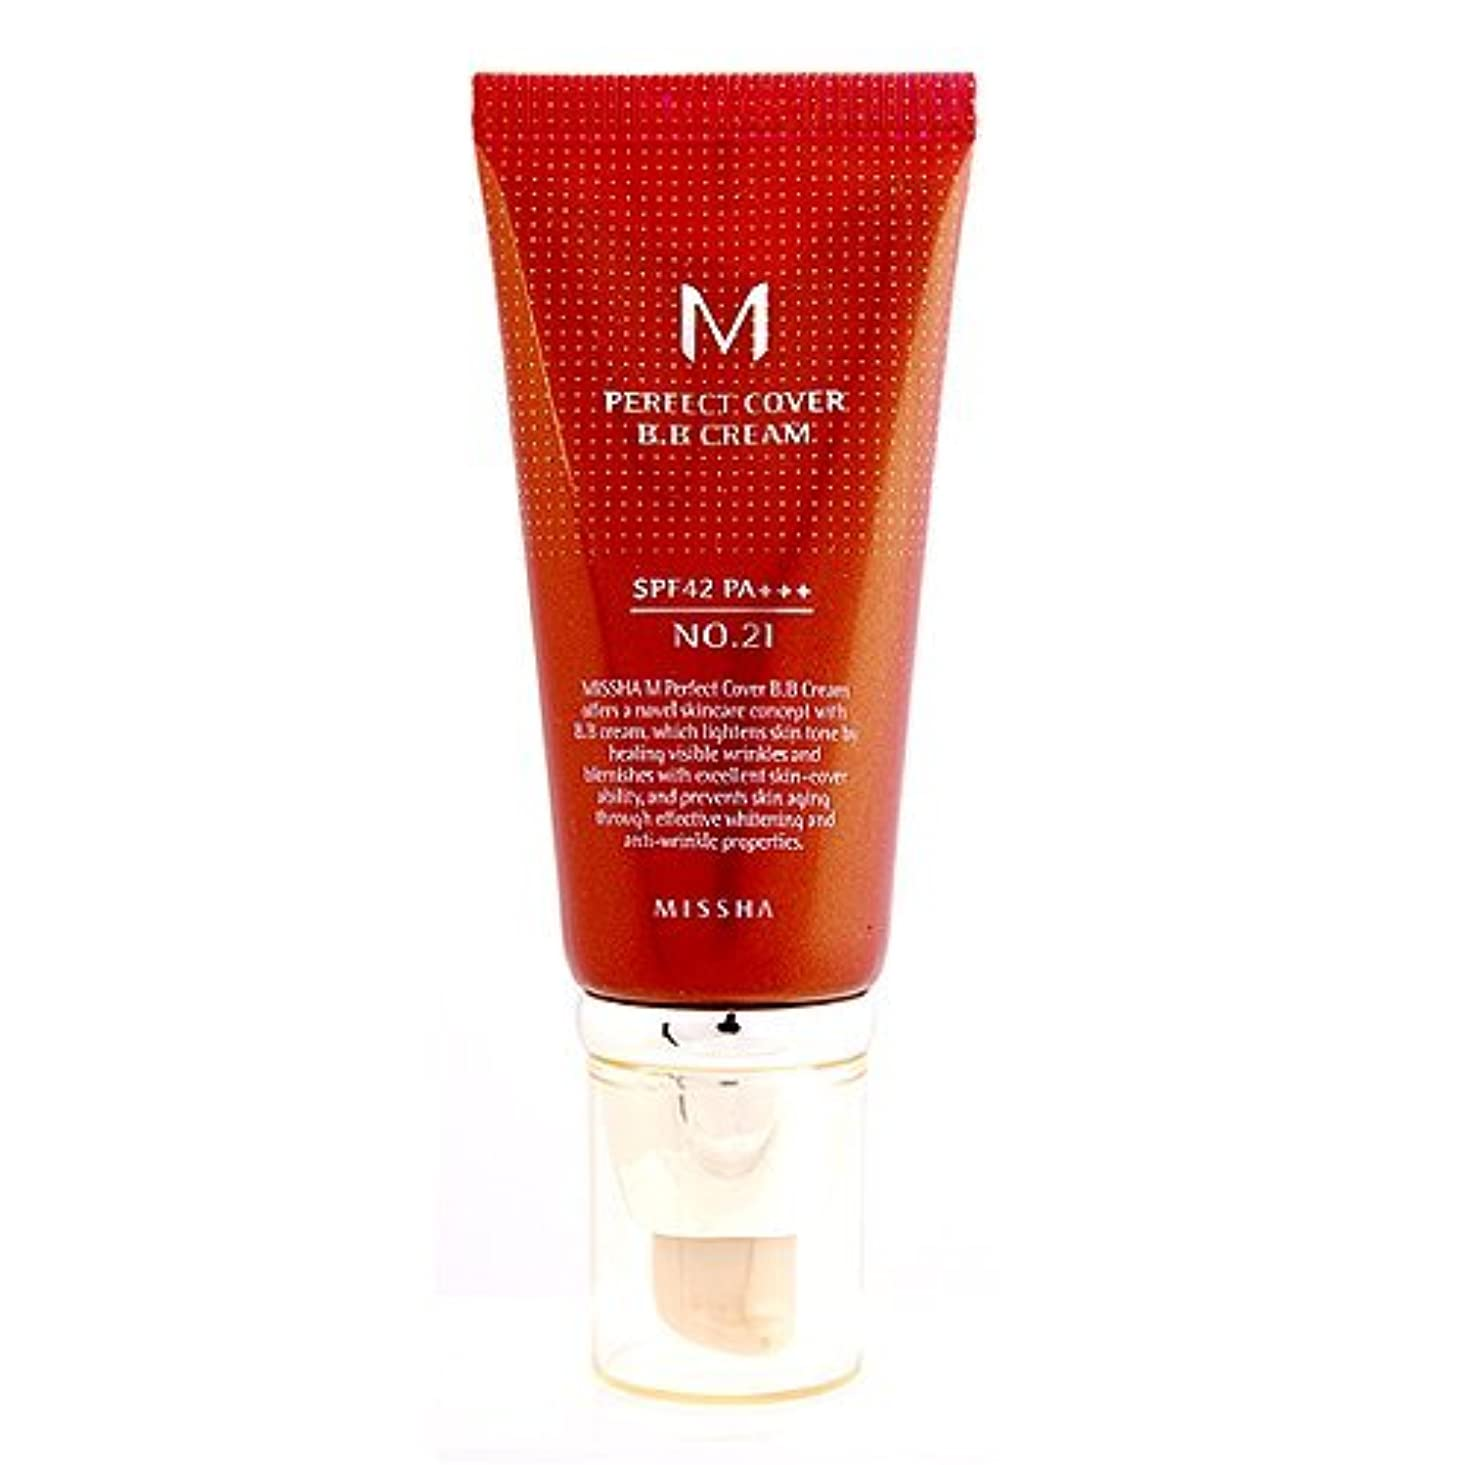 哀月面継続中Missha M Perfect Cover B.B. Cream SPF 42 PA+++ 21 Light Beige, 1.69oz, 50ml